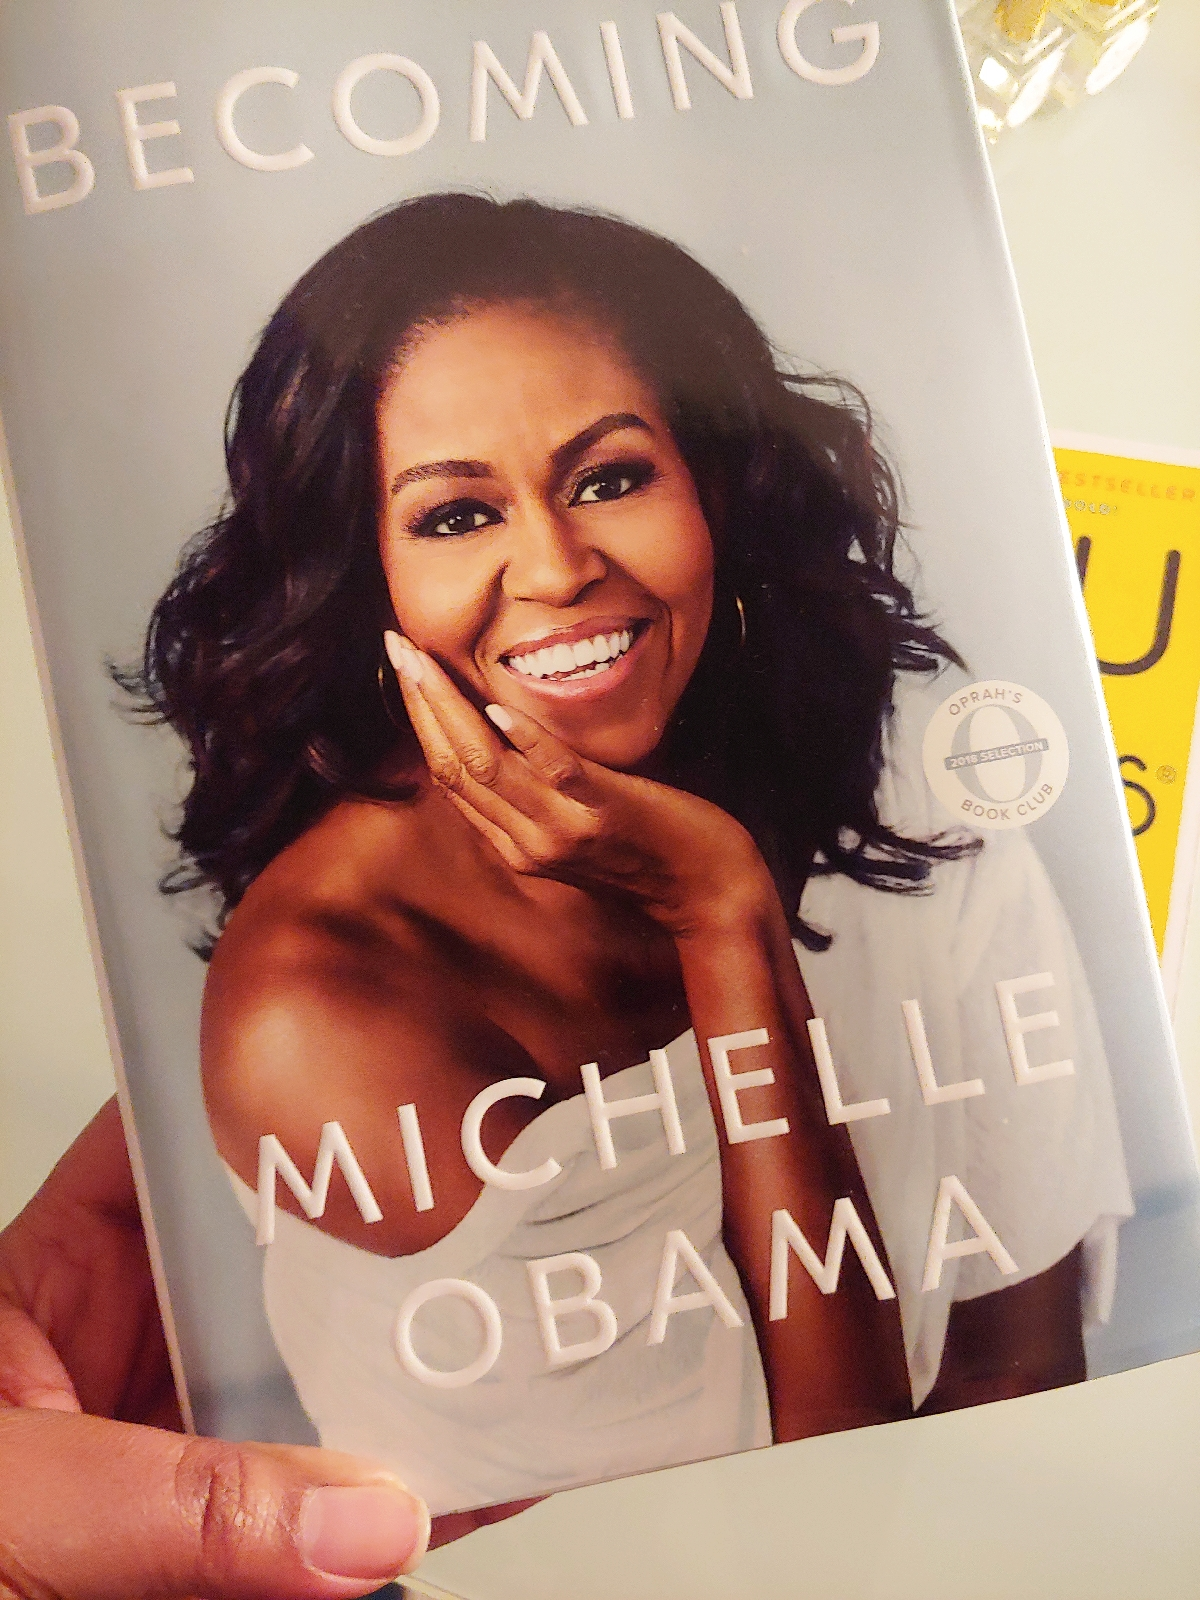 2018 bestseller becoming by michelle obama